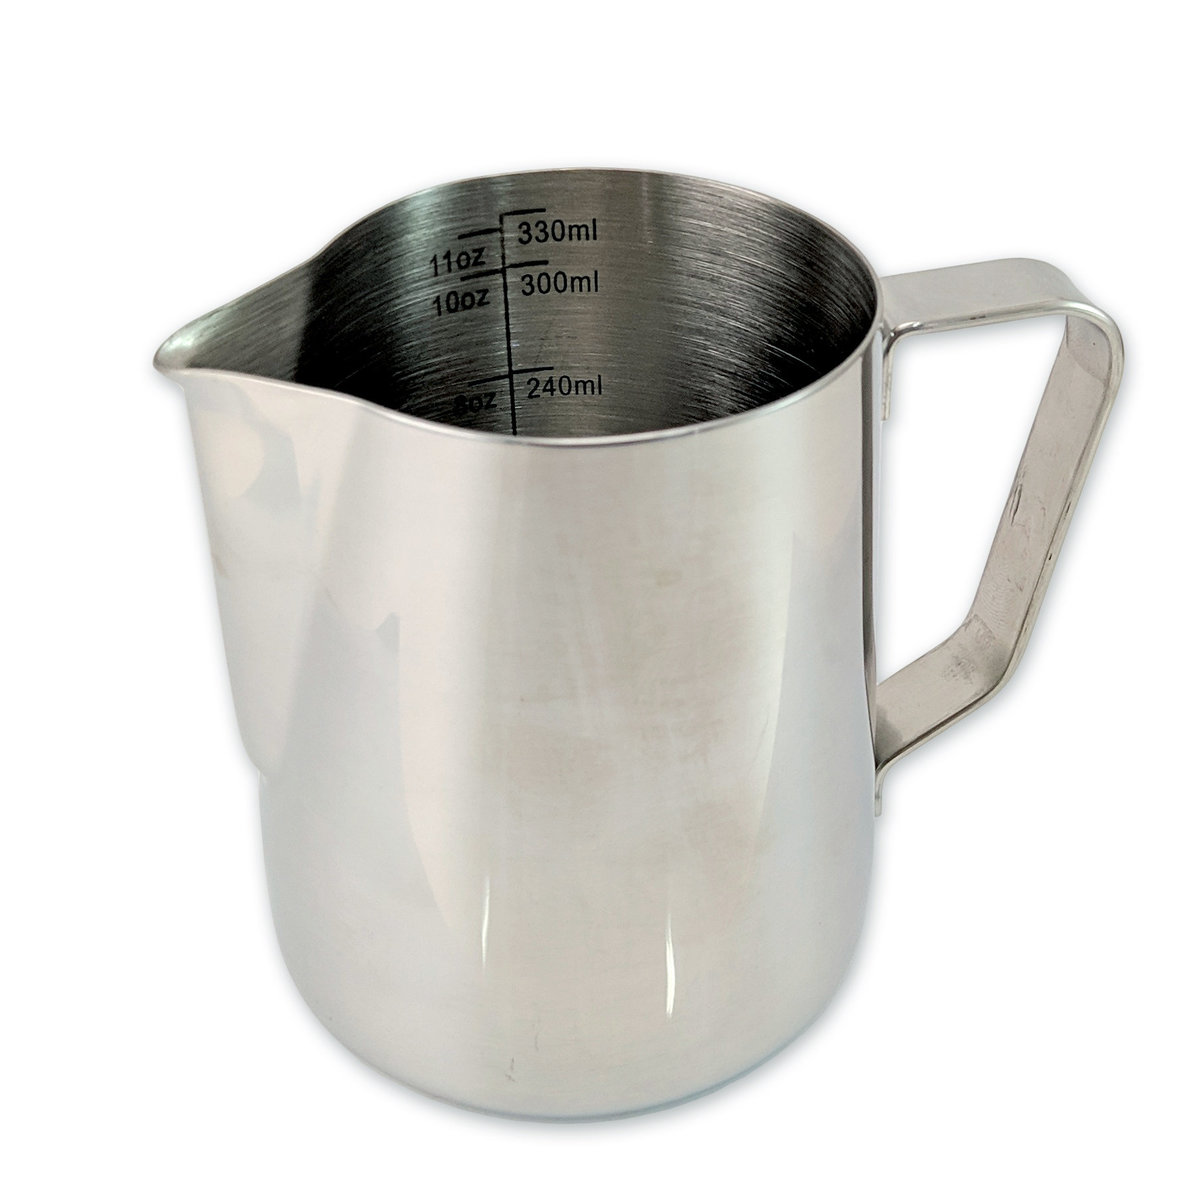 Stainless Steel Coffee Milk Jug Milk Frothing Pitcher 330mL